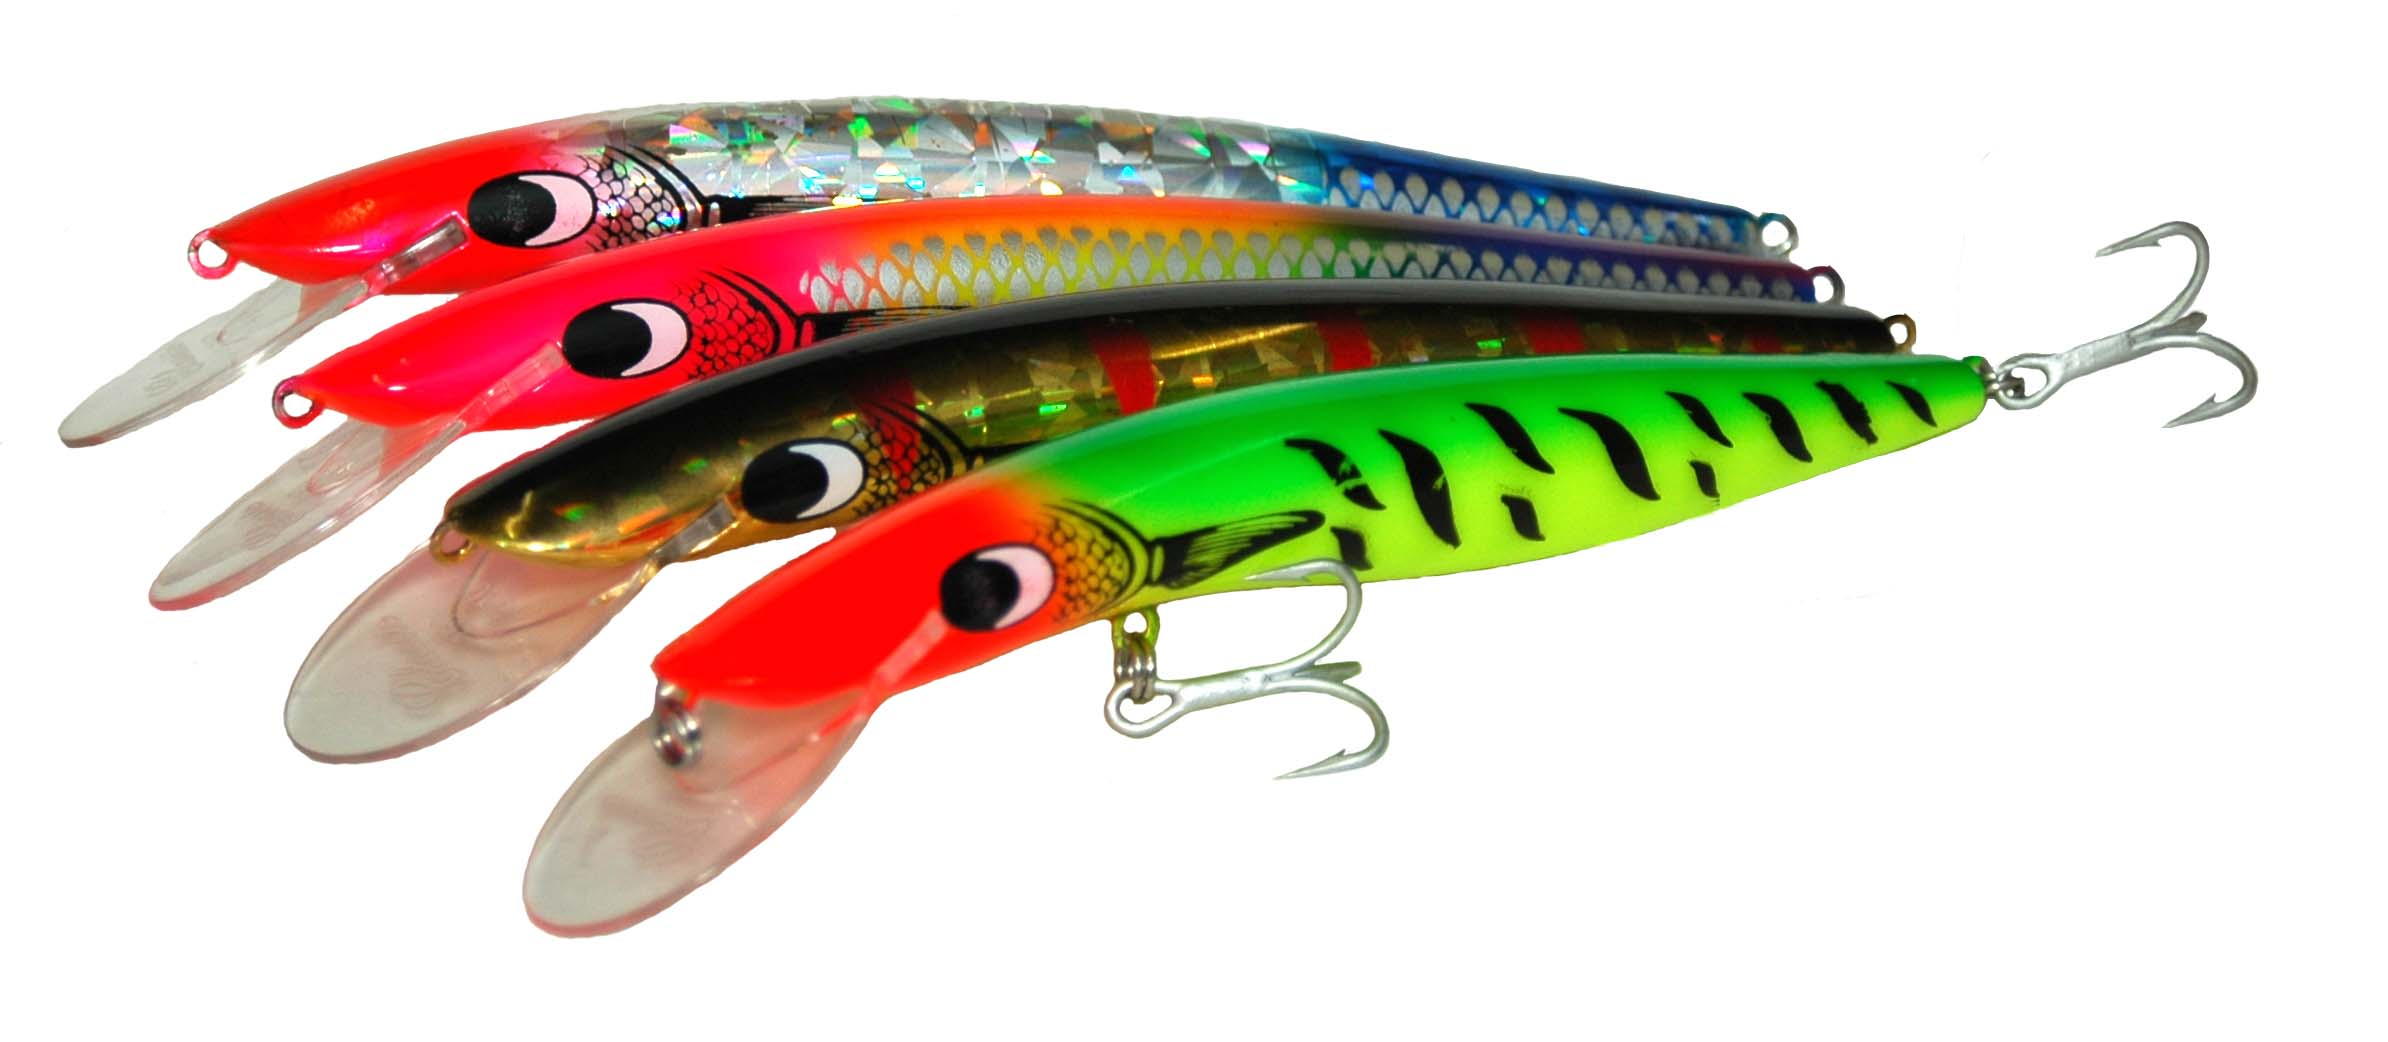 Jm gillies about classic lures for Spinner fishing lures